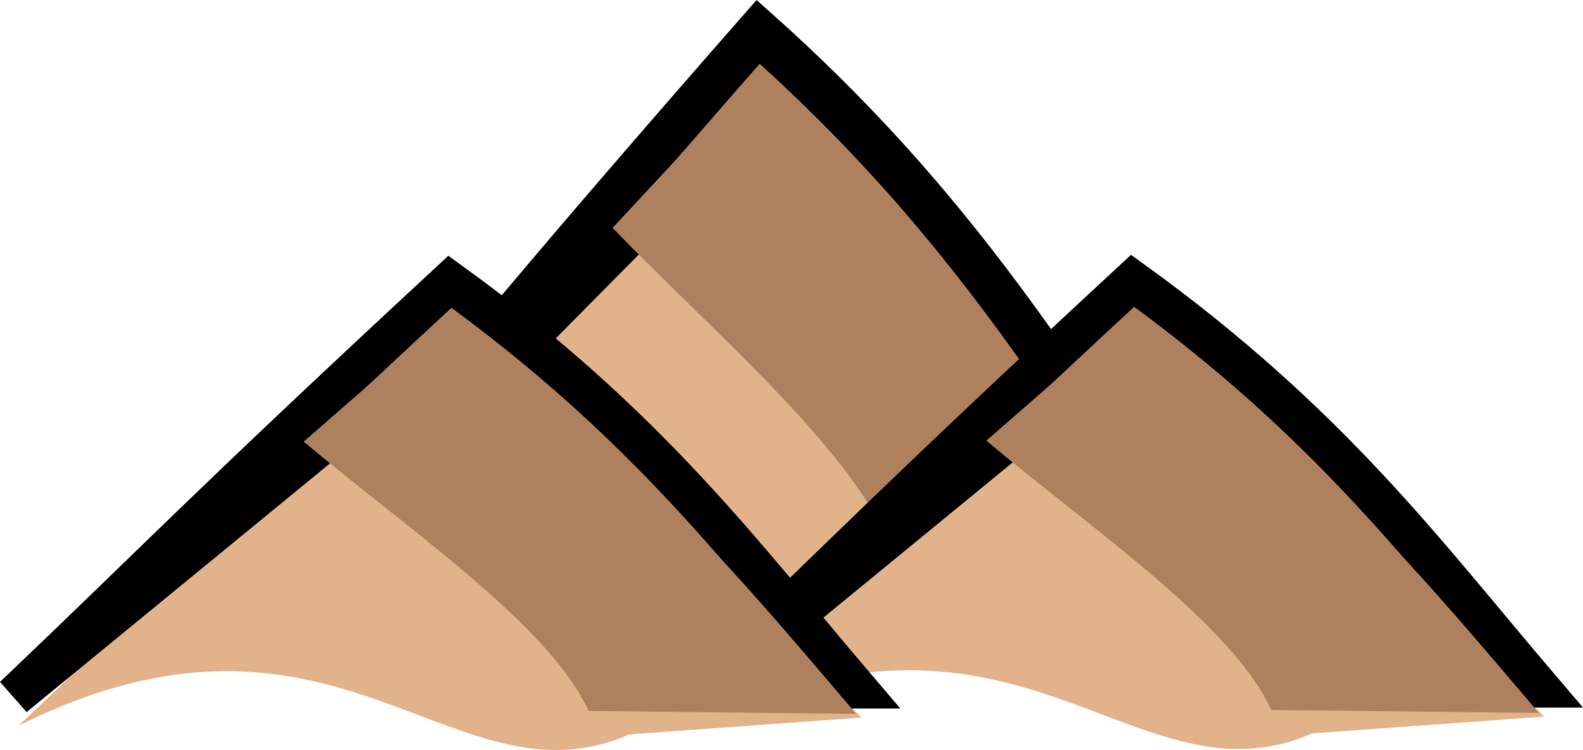 Mountains clipart icon. Map symbolization computer icons